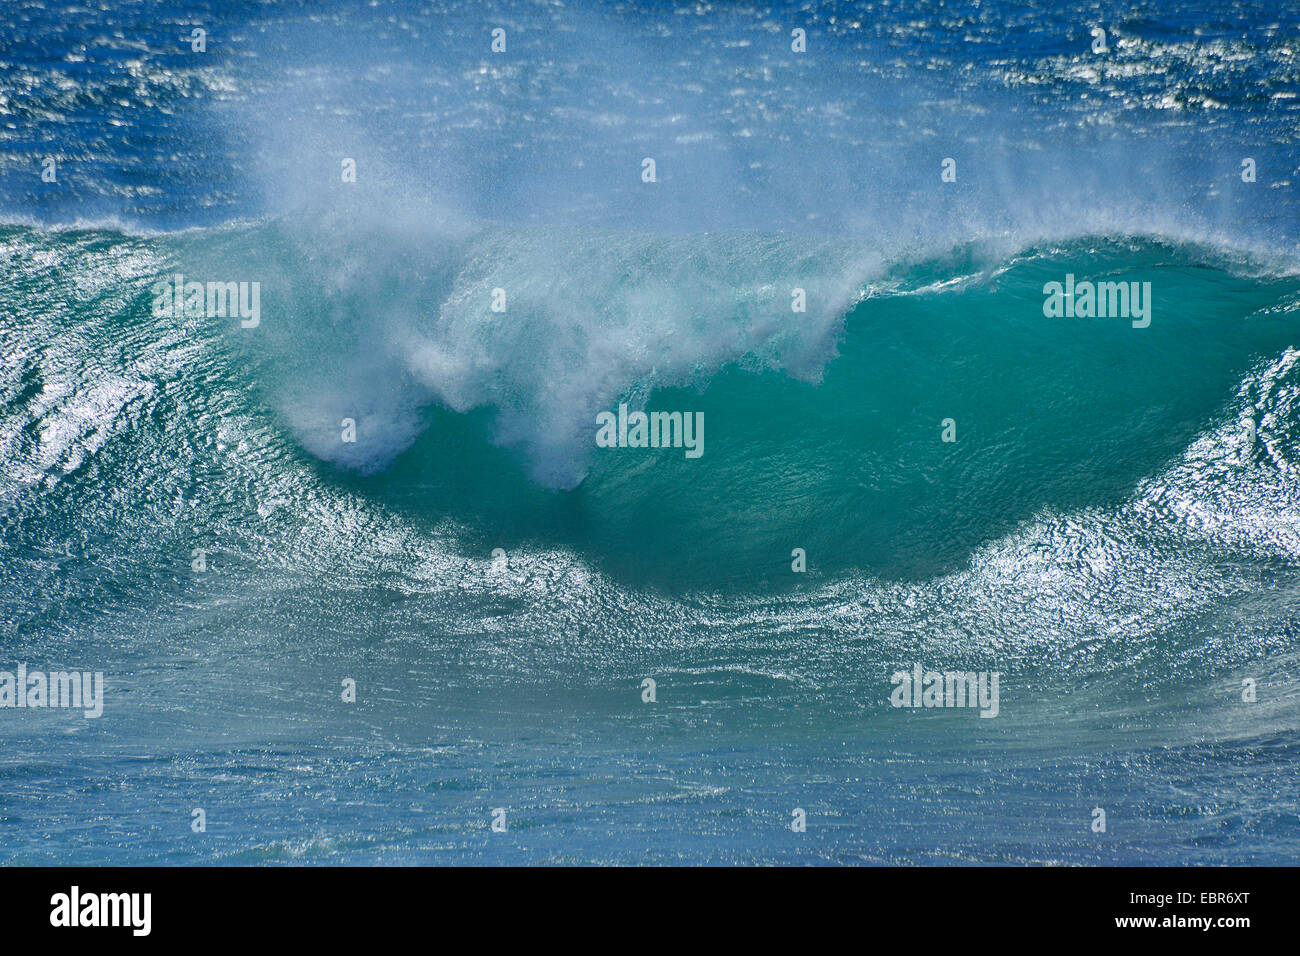 breaking of the waves, Portugal - Stock Image